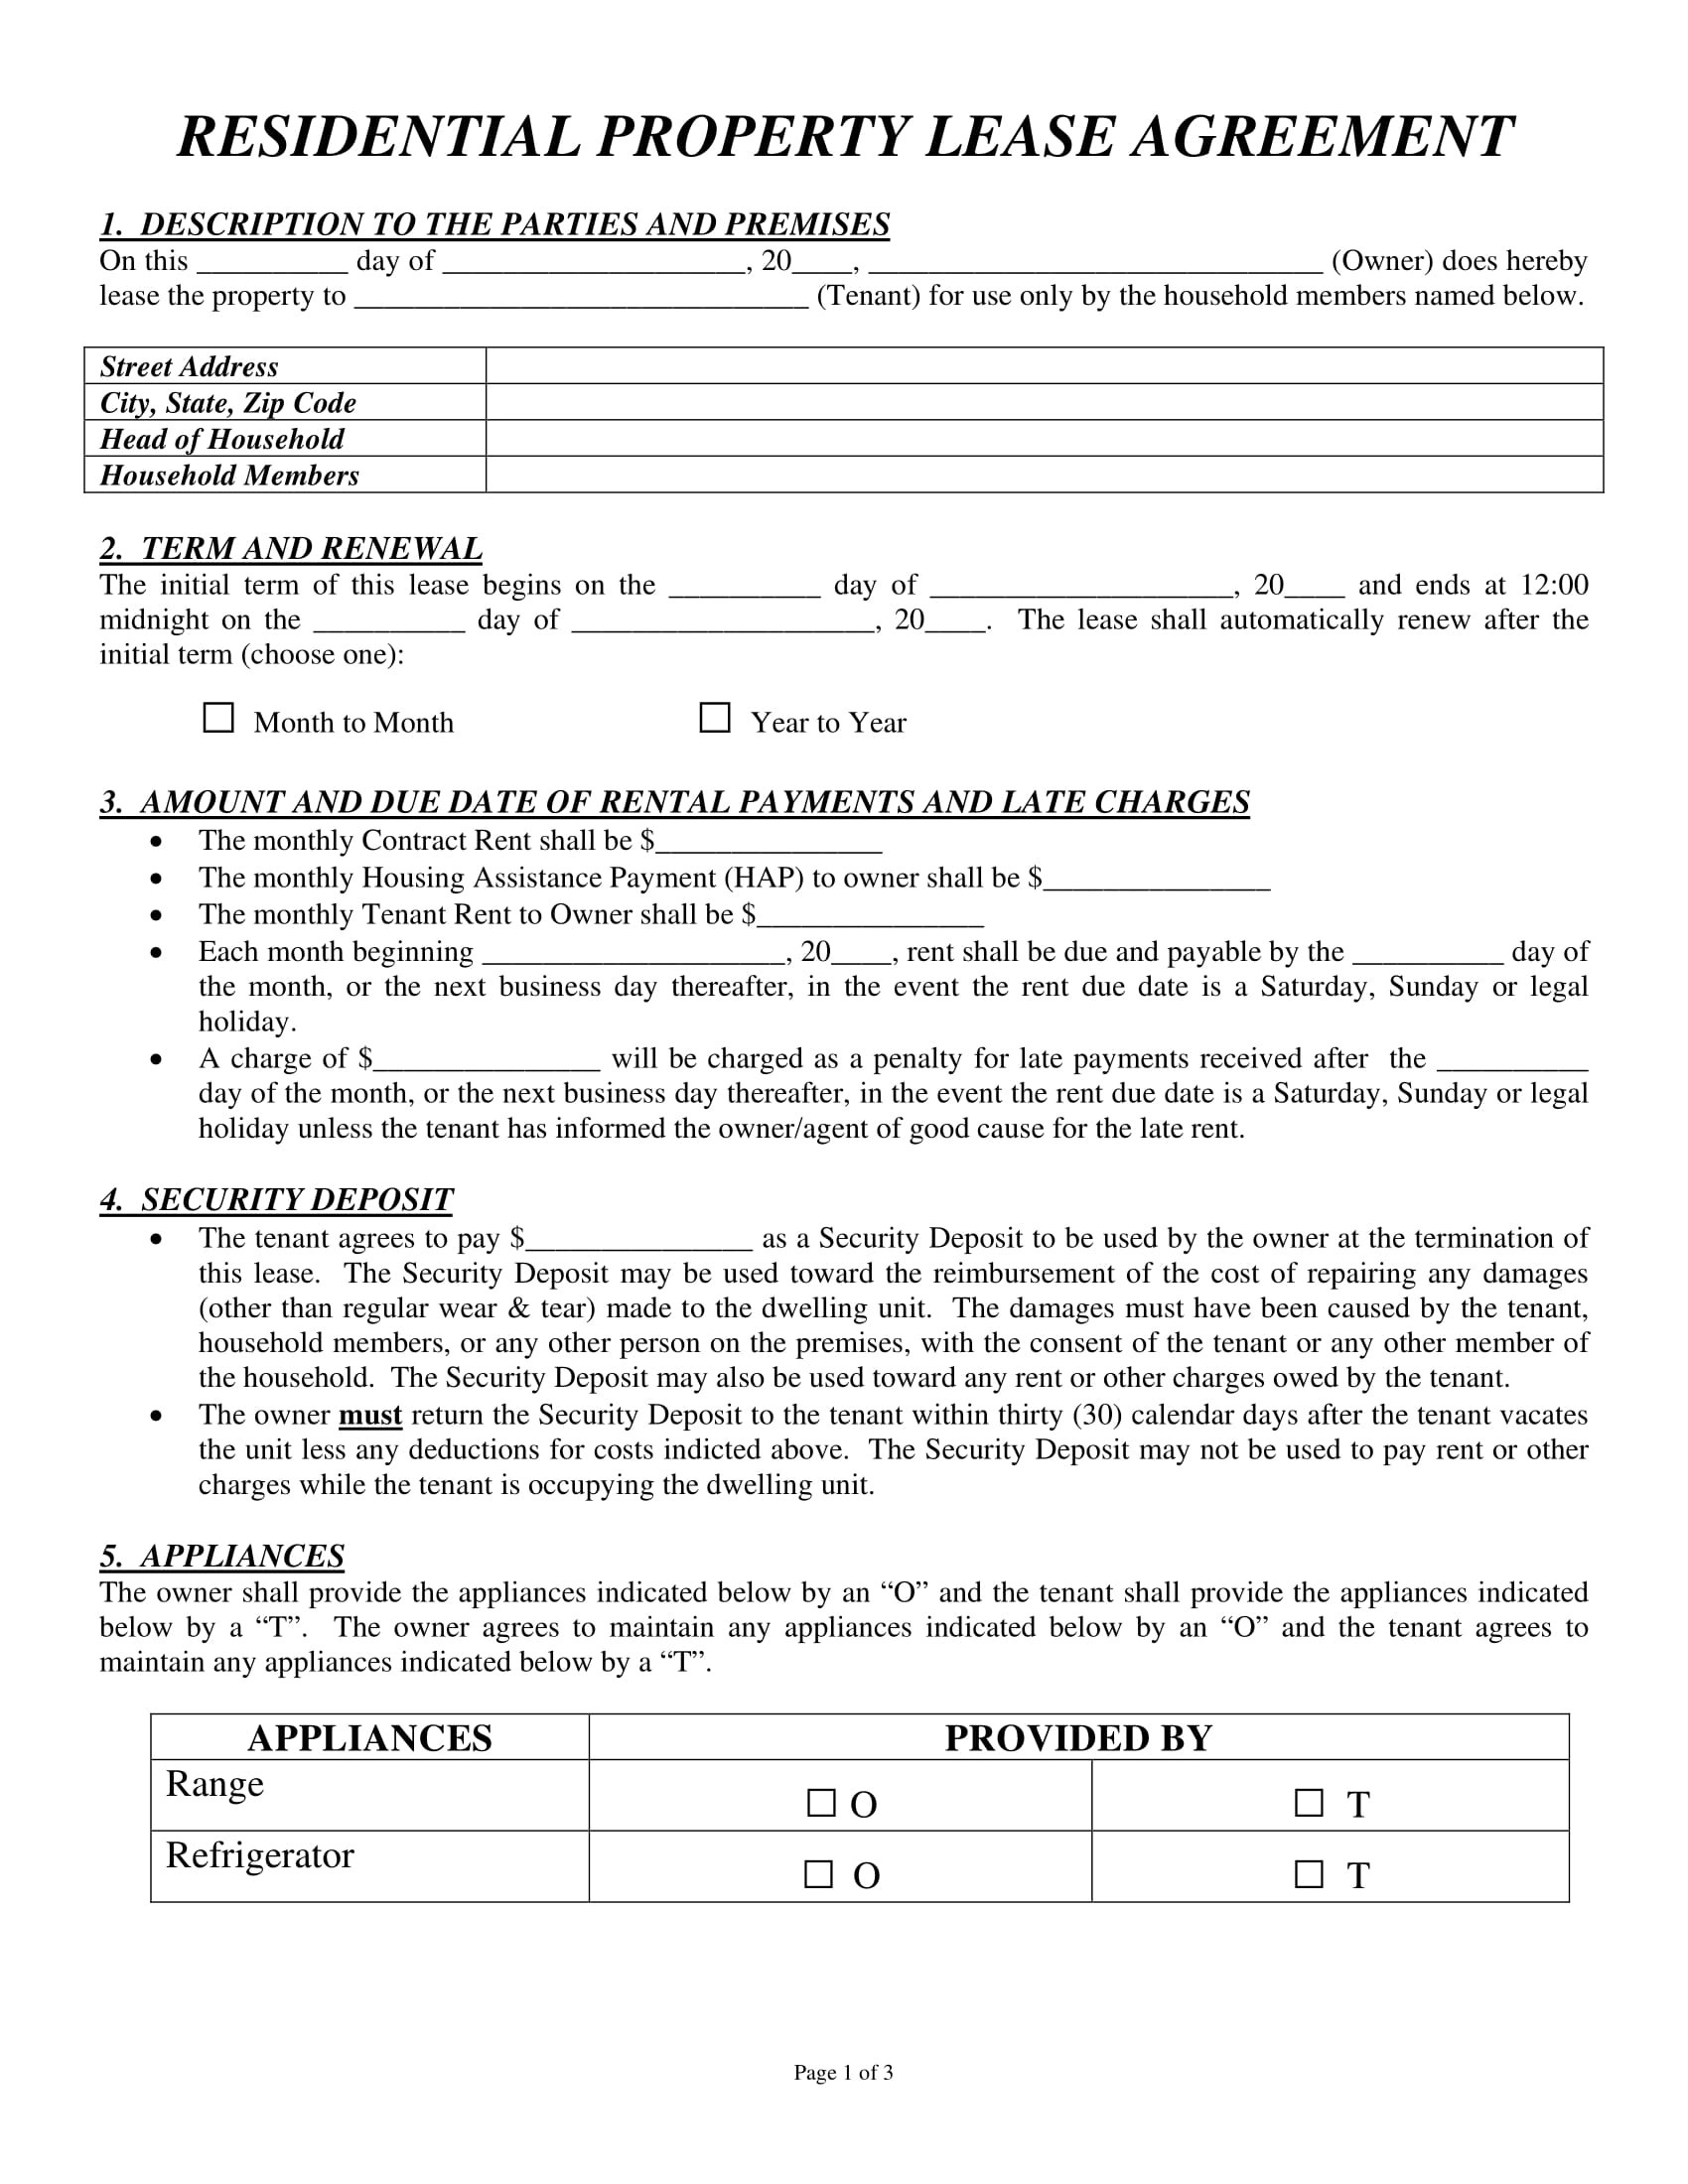 Residential Property Lease Agreement Contract Form 1